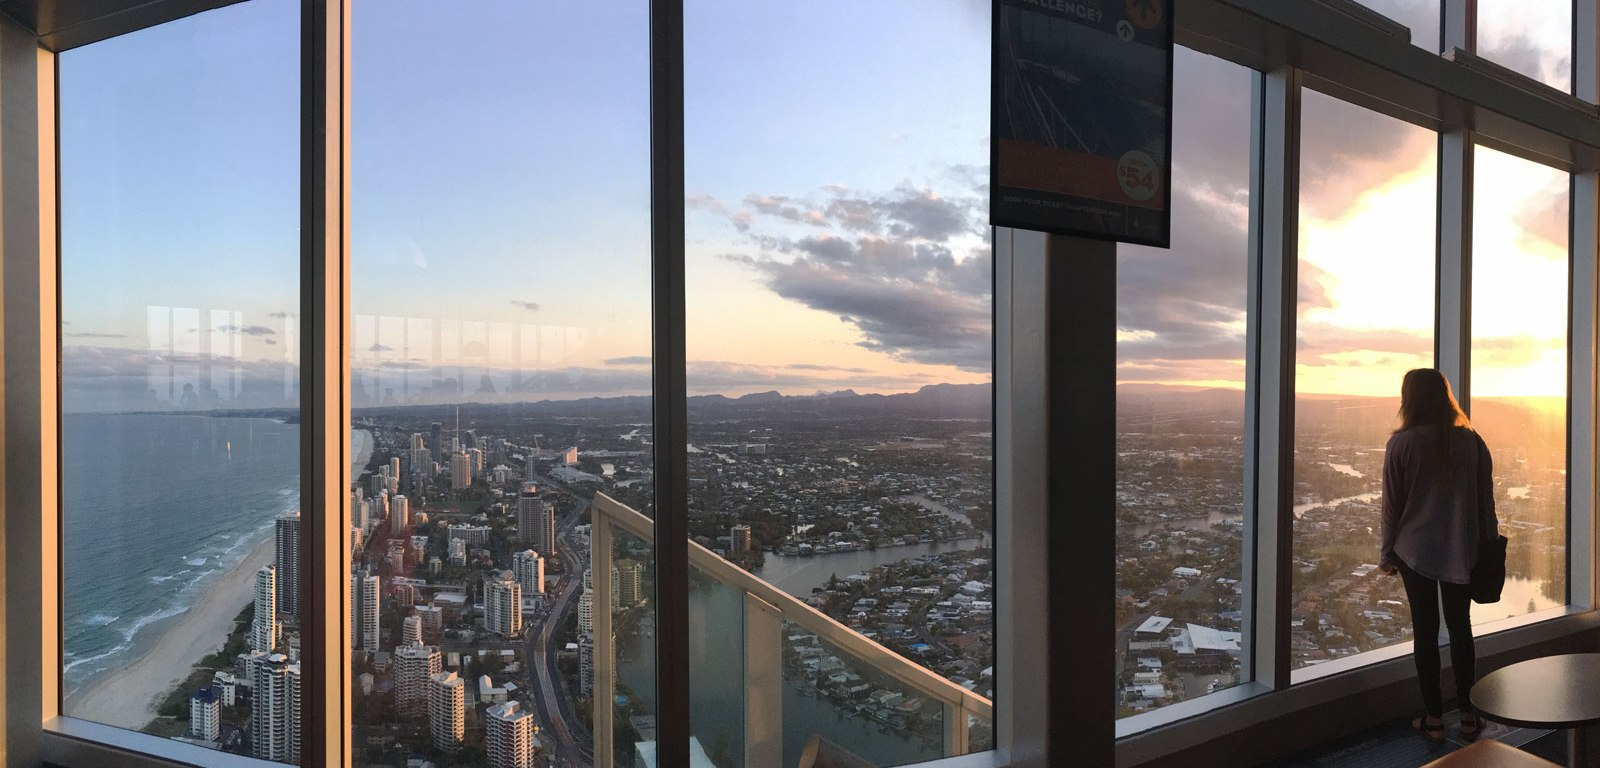 An ISA student overlooking the Gold Coast in Australia.